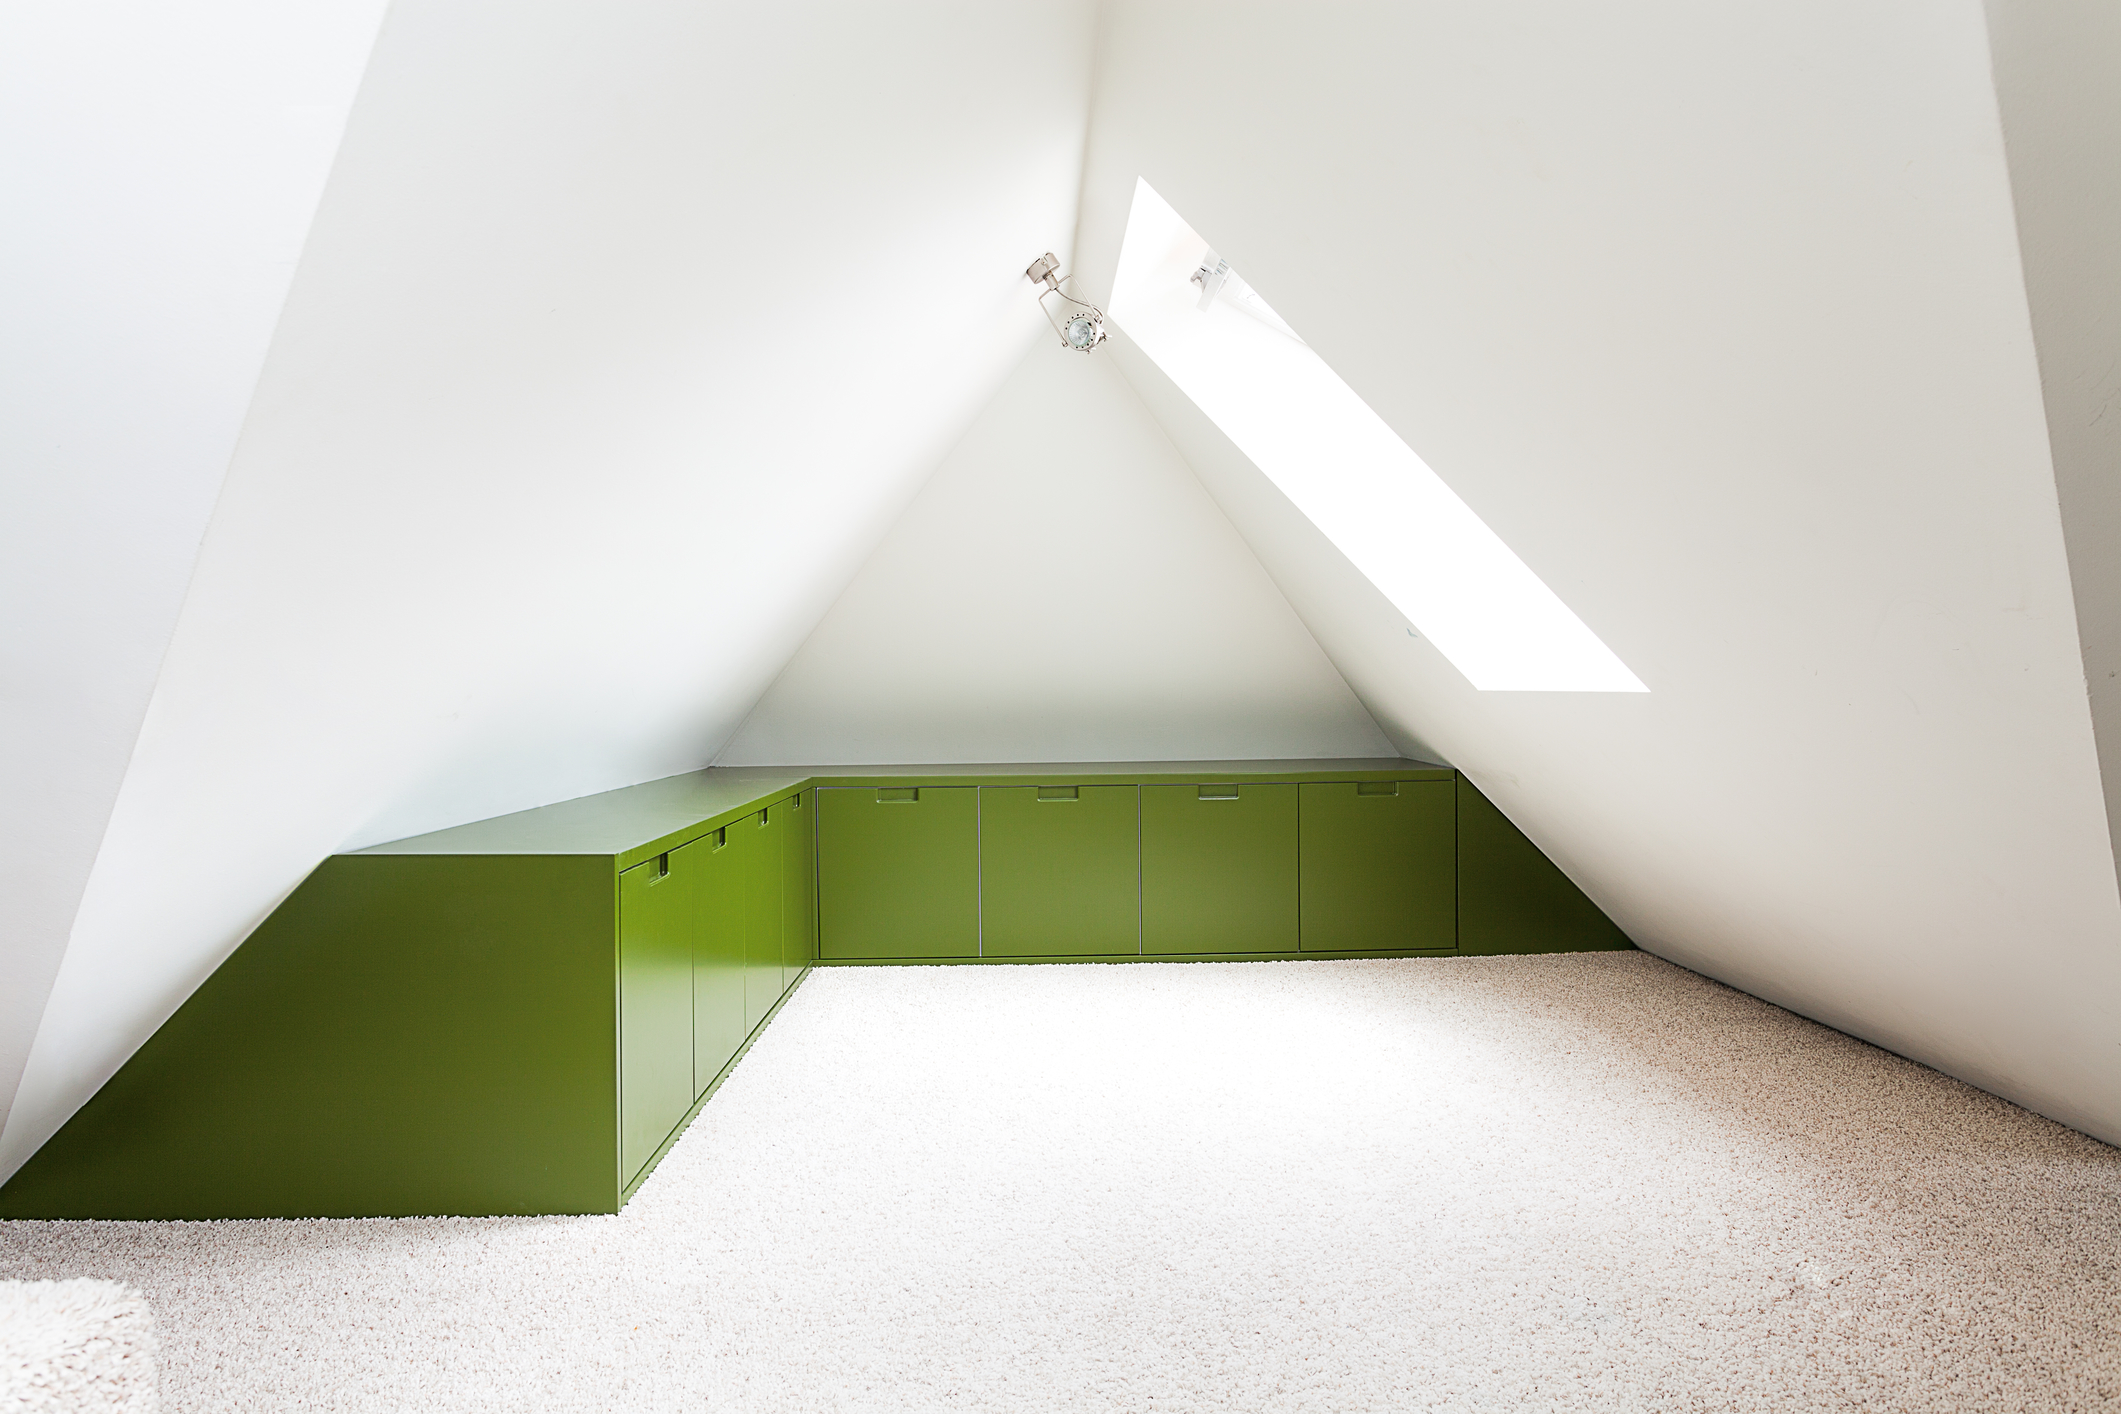 Vintage mansion - a modern playing space in the attic